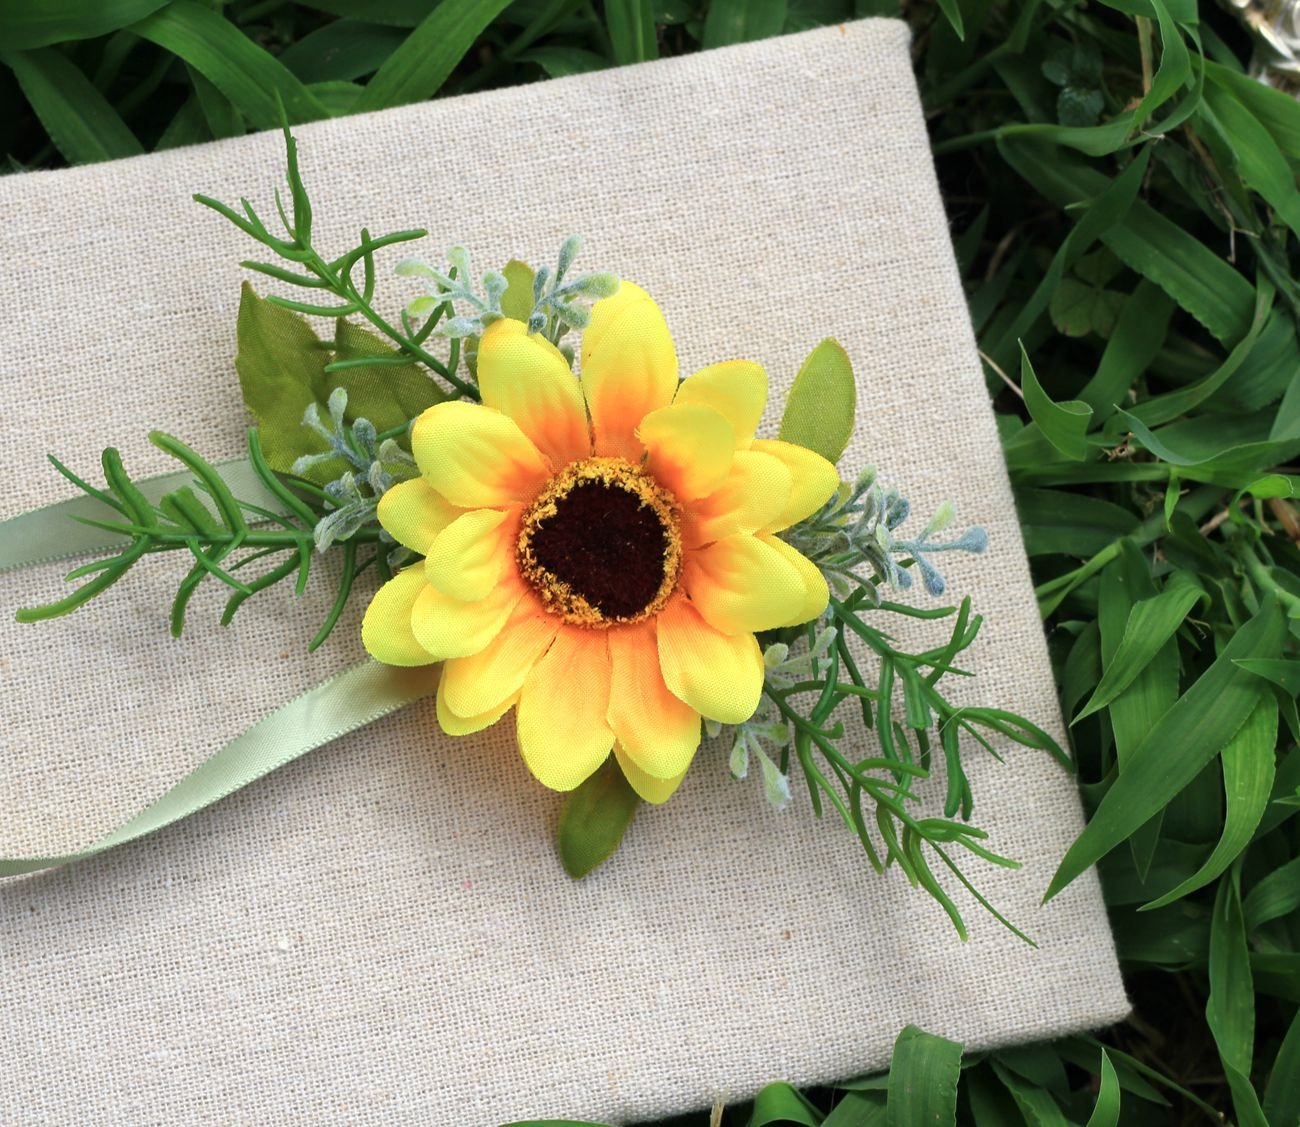 KUPARK 2pcs Artificial Sunflower Wedding Wrist Corsage Wrist Flower for Party Prom Wedding